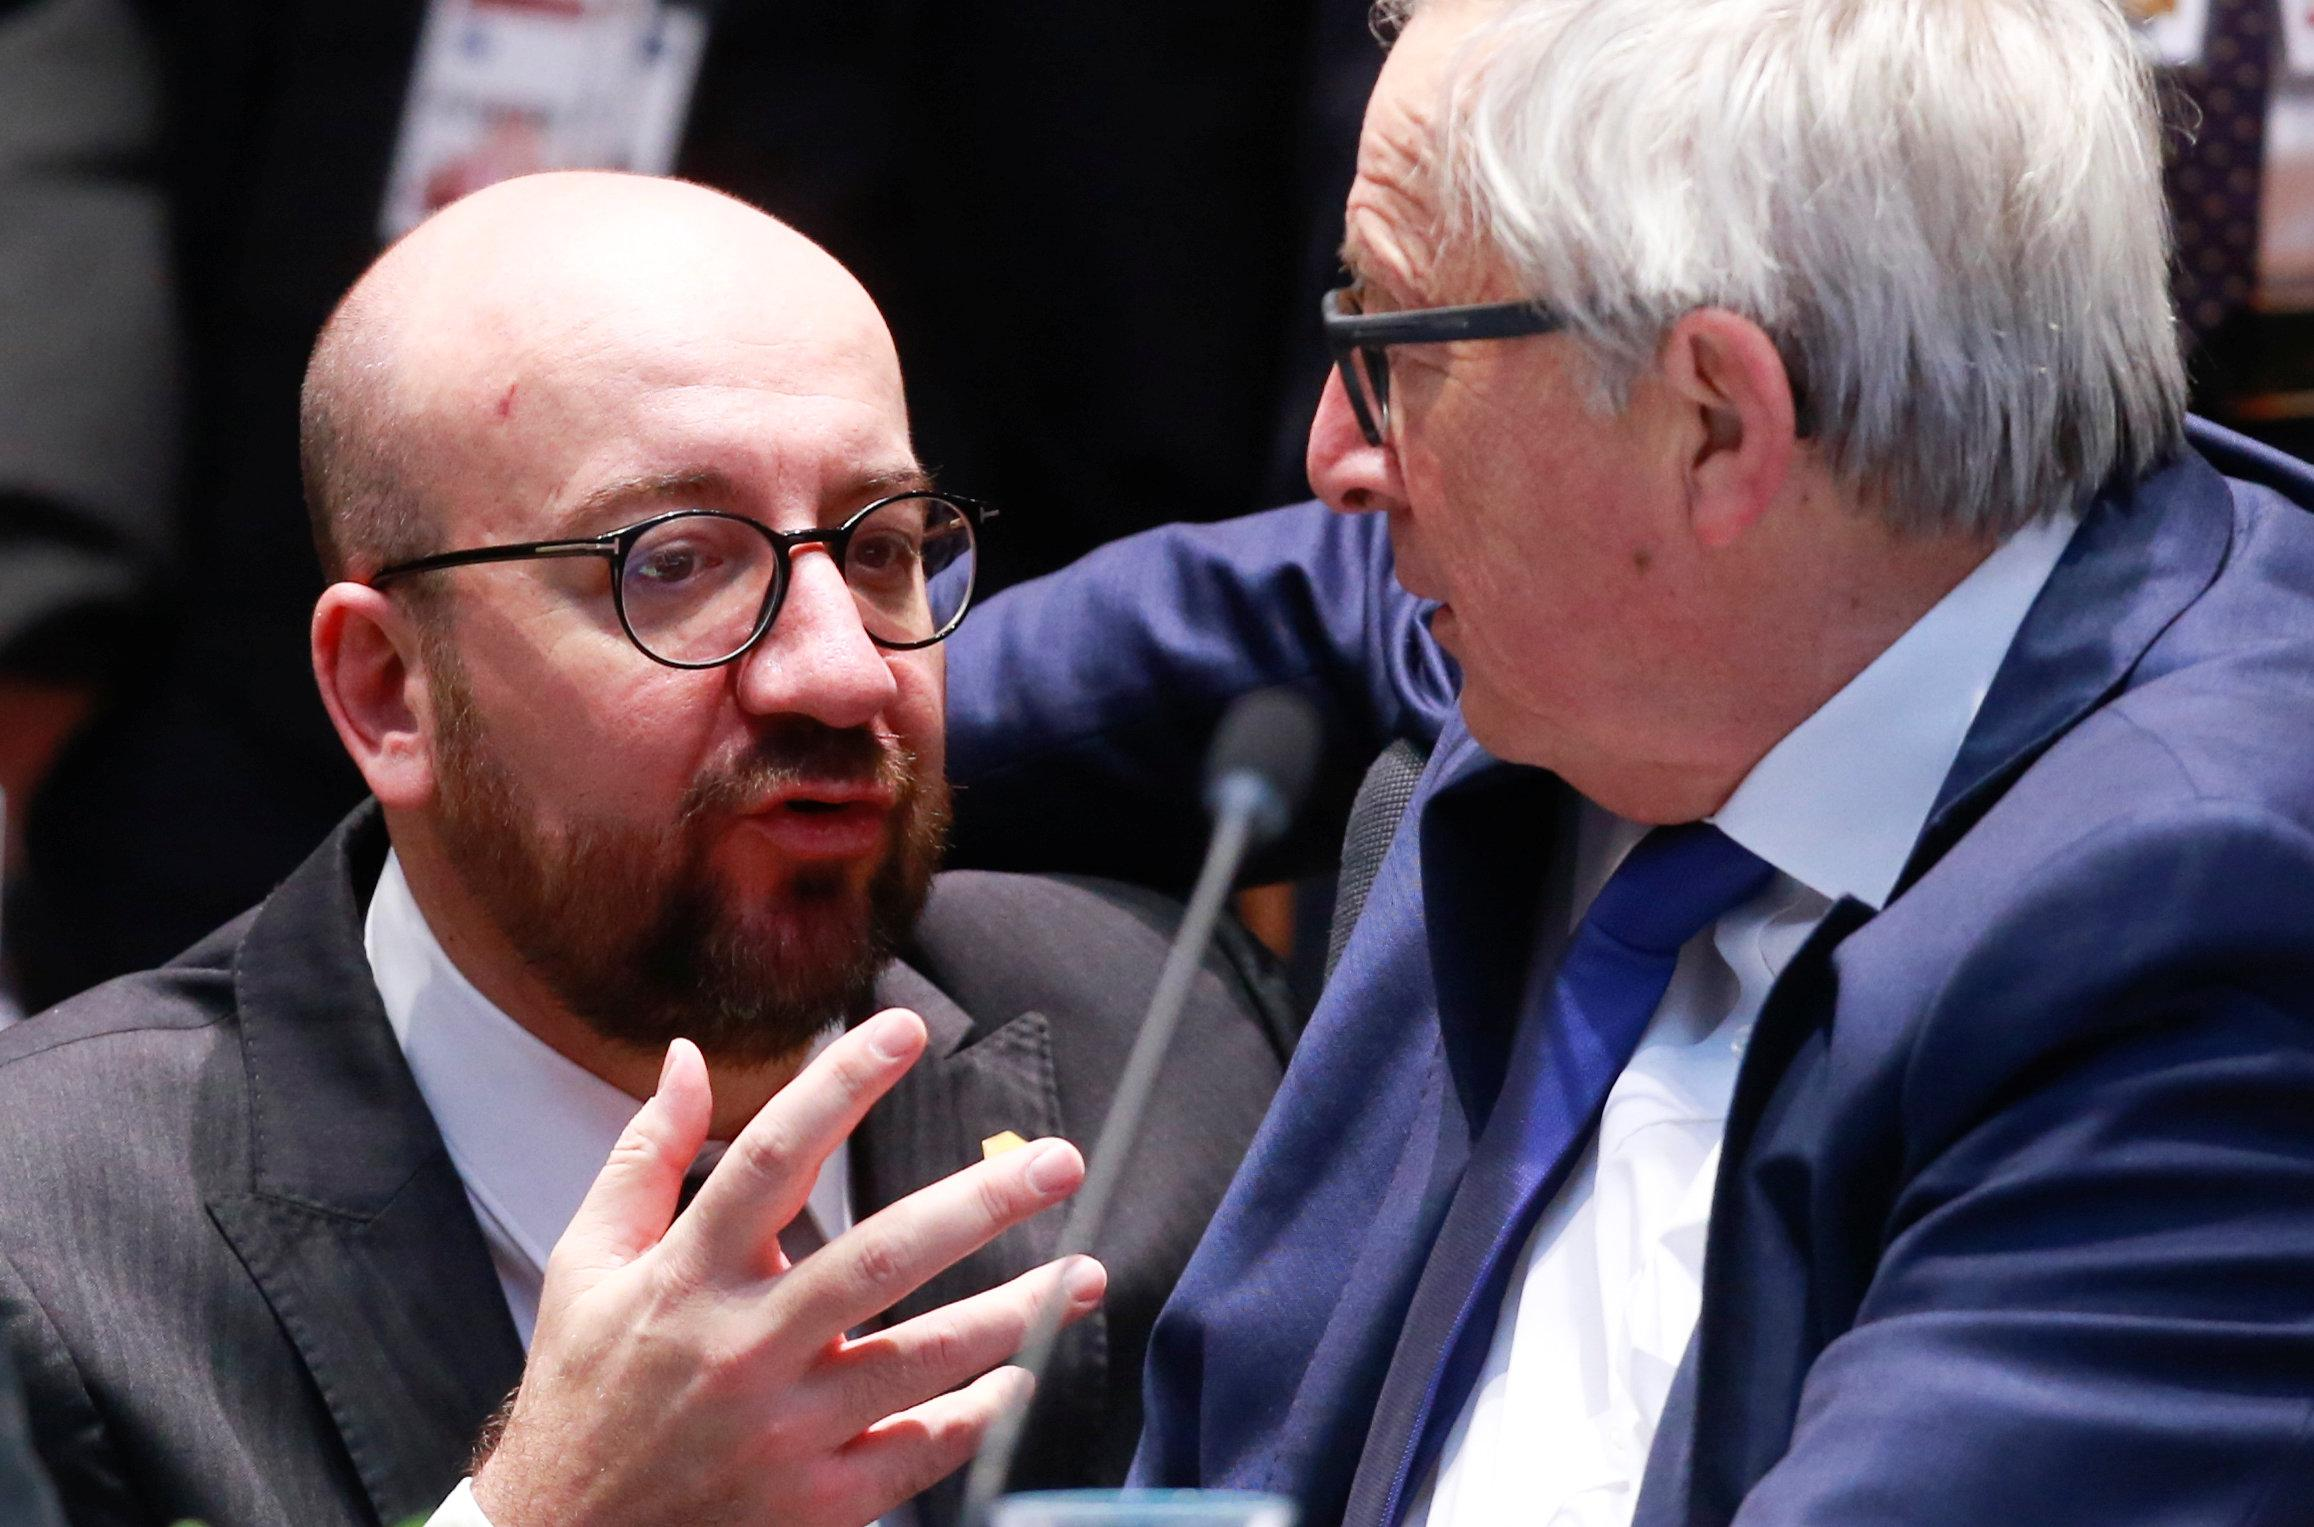 Belgium's Prime Minister Charles Michel and European Commission President Jean-Claude Juncker attend the European Union leaders summit in Brussels, Belgium, March 23, 2018. Olivier Hoslet/Pool via Reuters